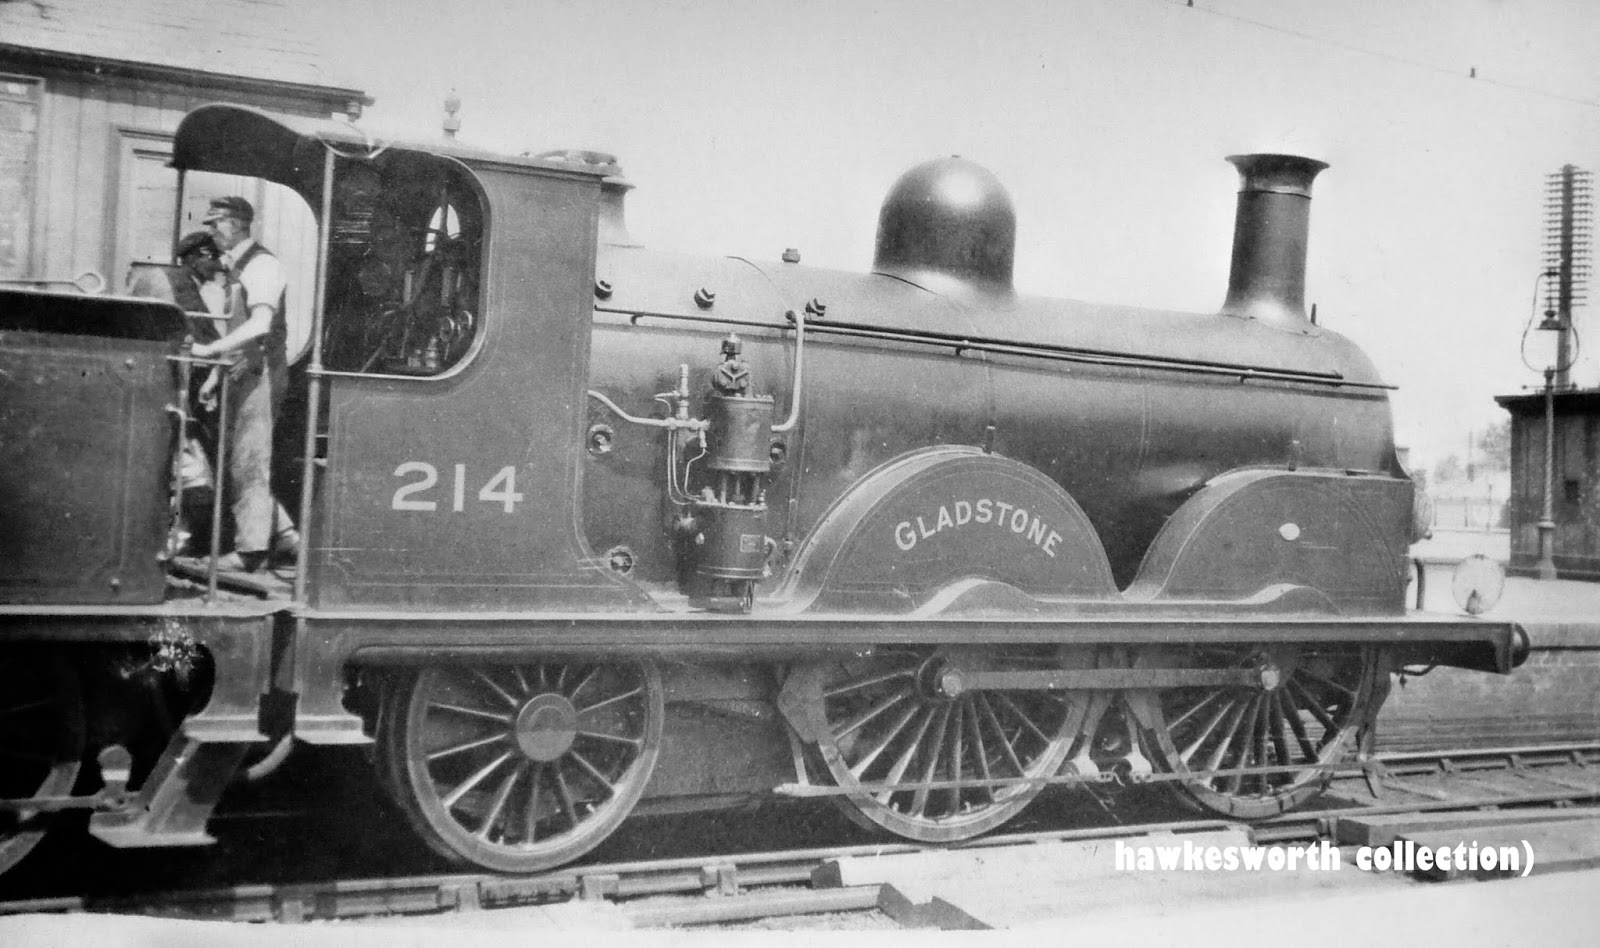 Steam Locomotives - 1920s: 200-206 Gladstone Bag